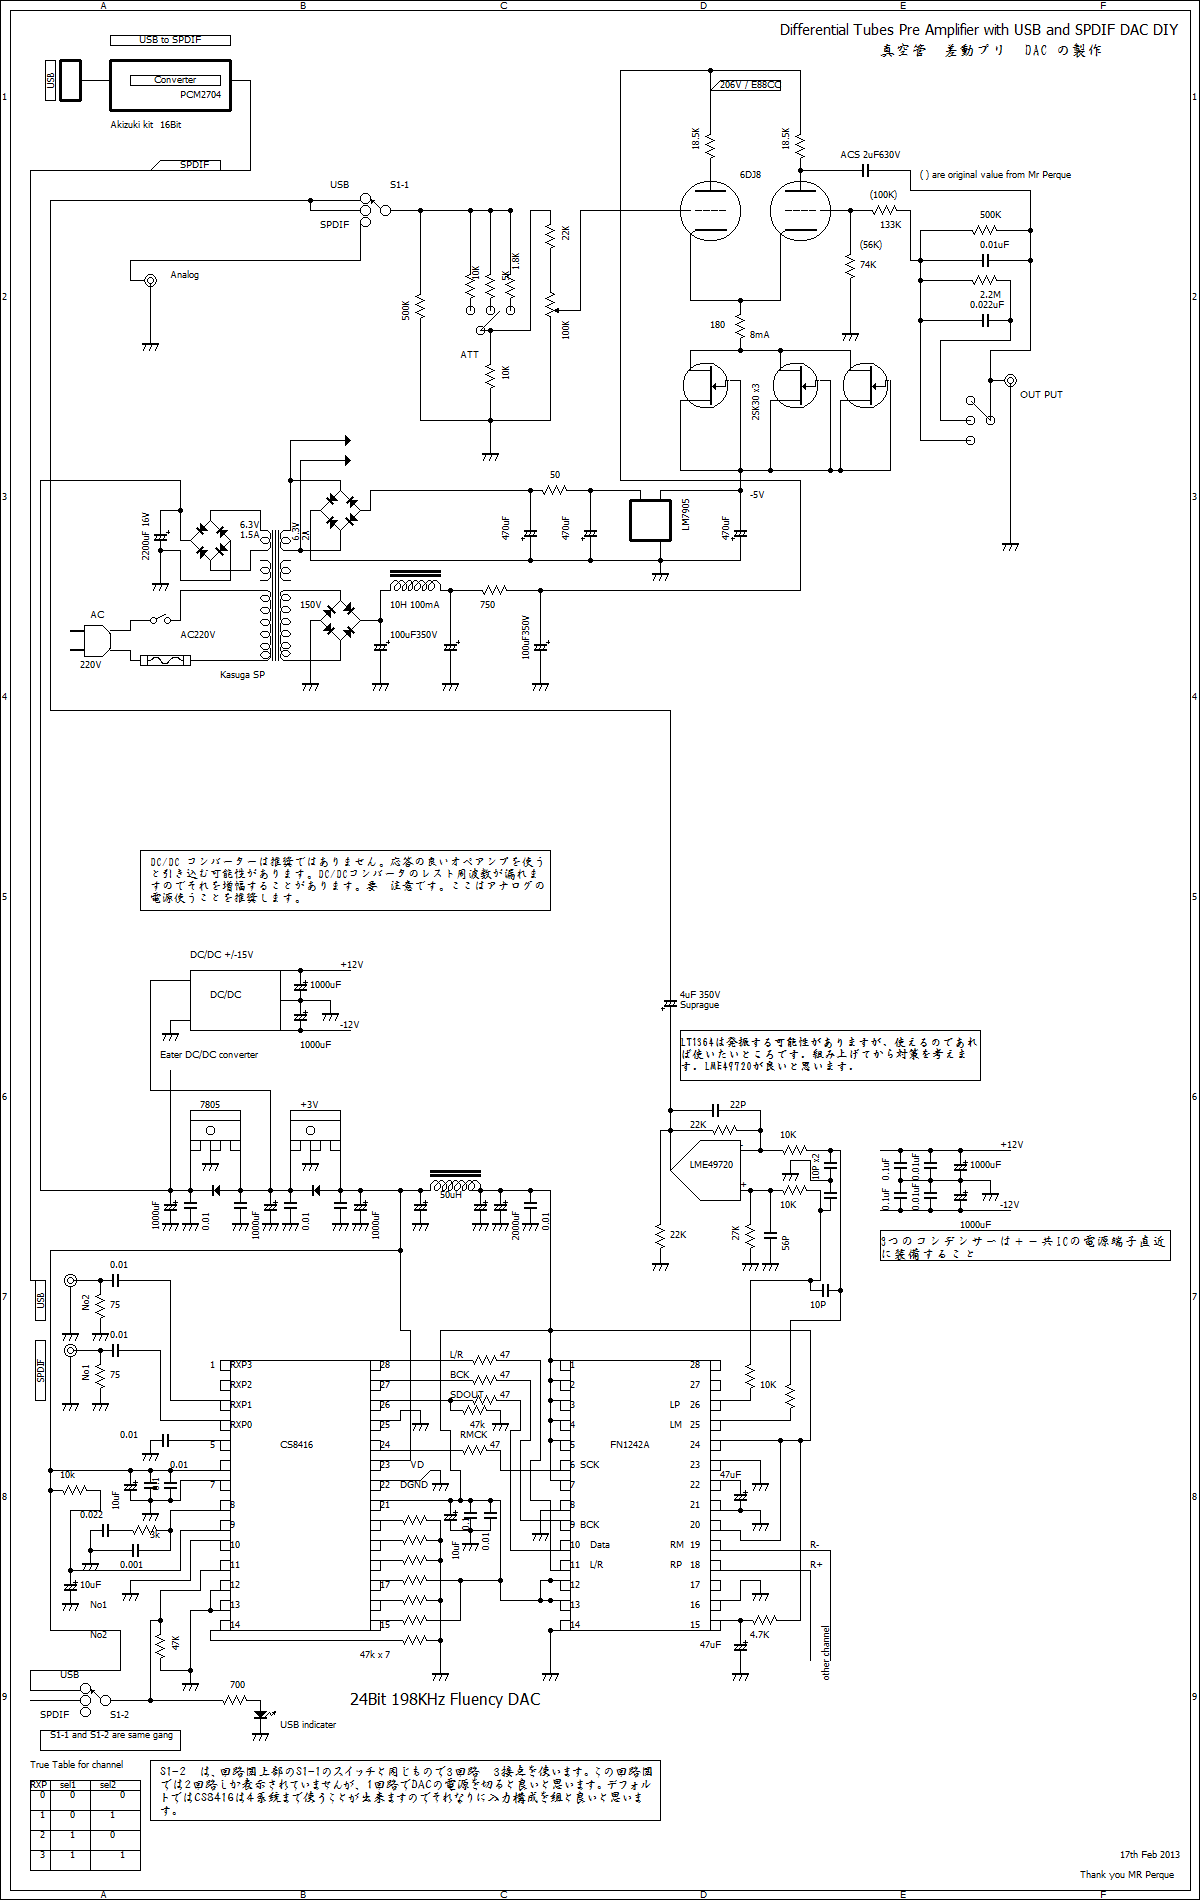 6dt8 6dj8 Ecc88 Differential Line Amplifier Diy Simple Schematic Diagram All Shown Above Very Circuit And To Get Sound Clear